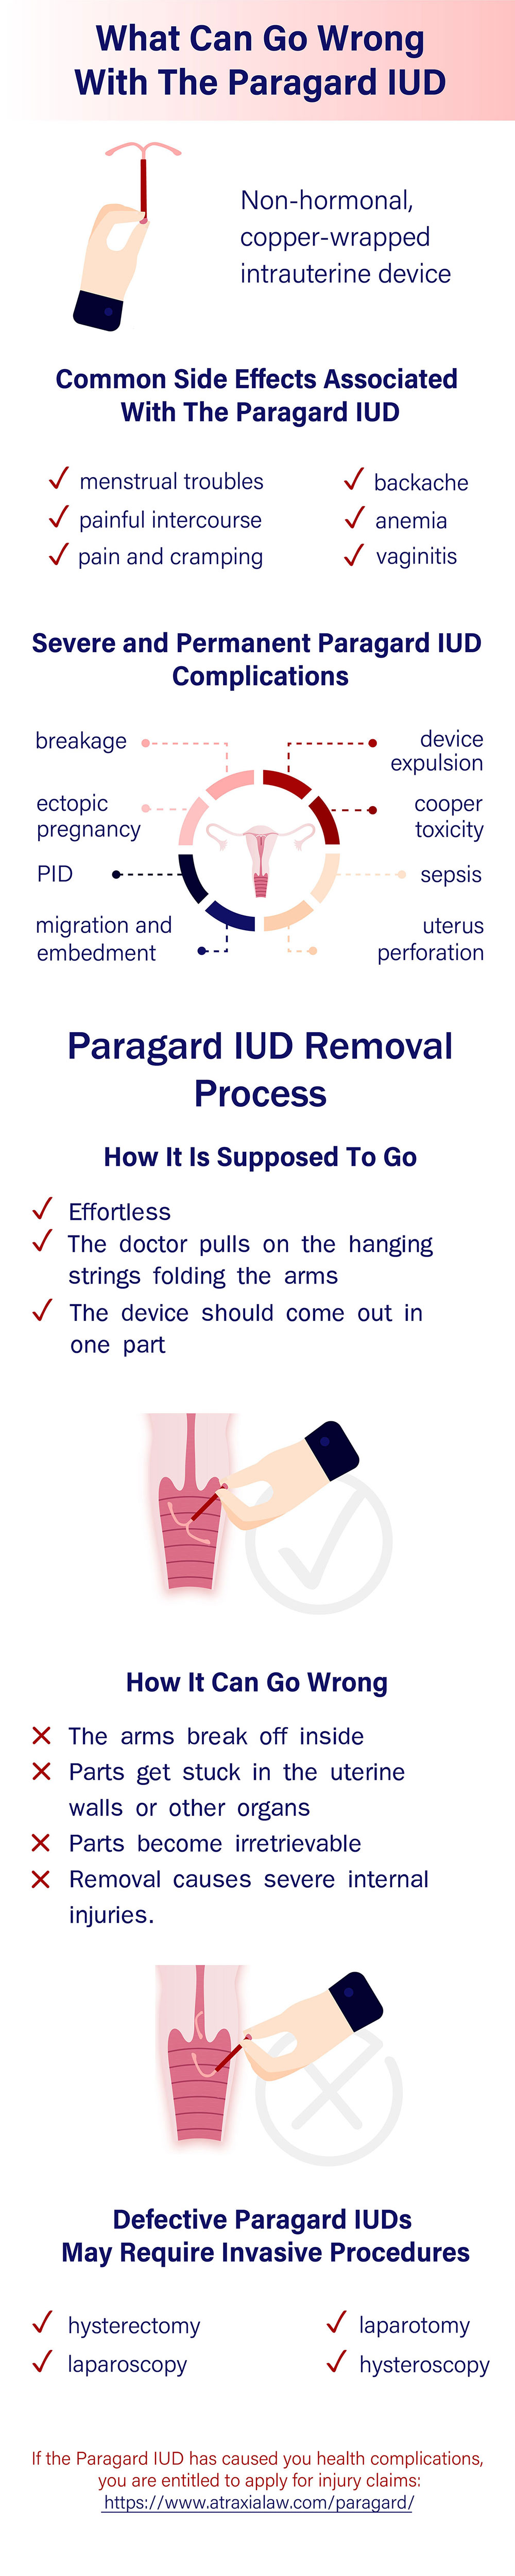 What Can Go Wrong With a Paragard IUD?